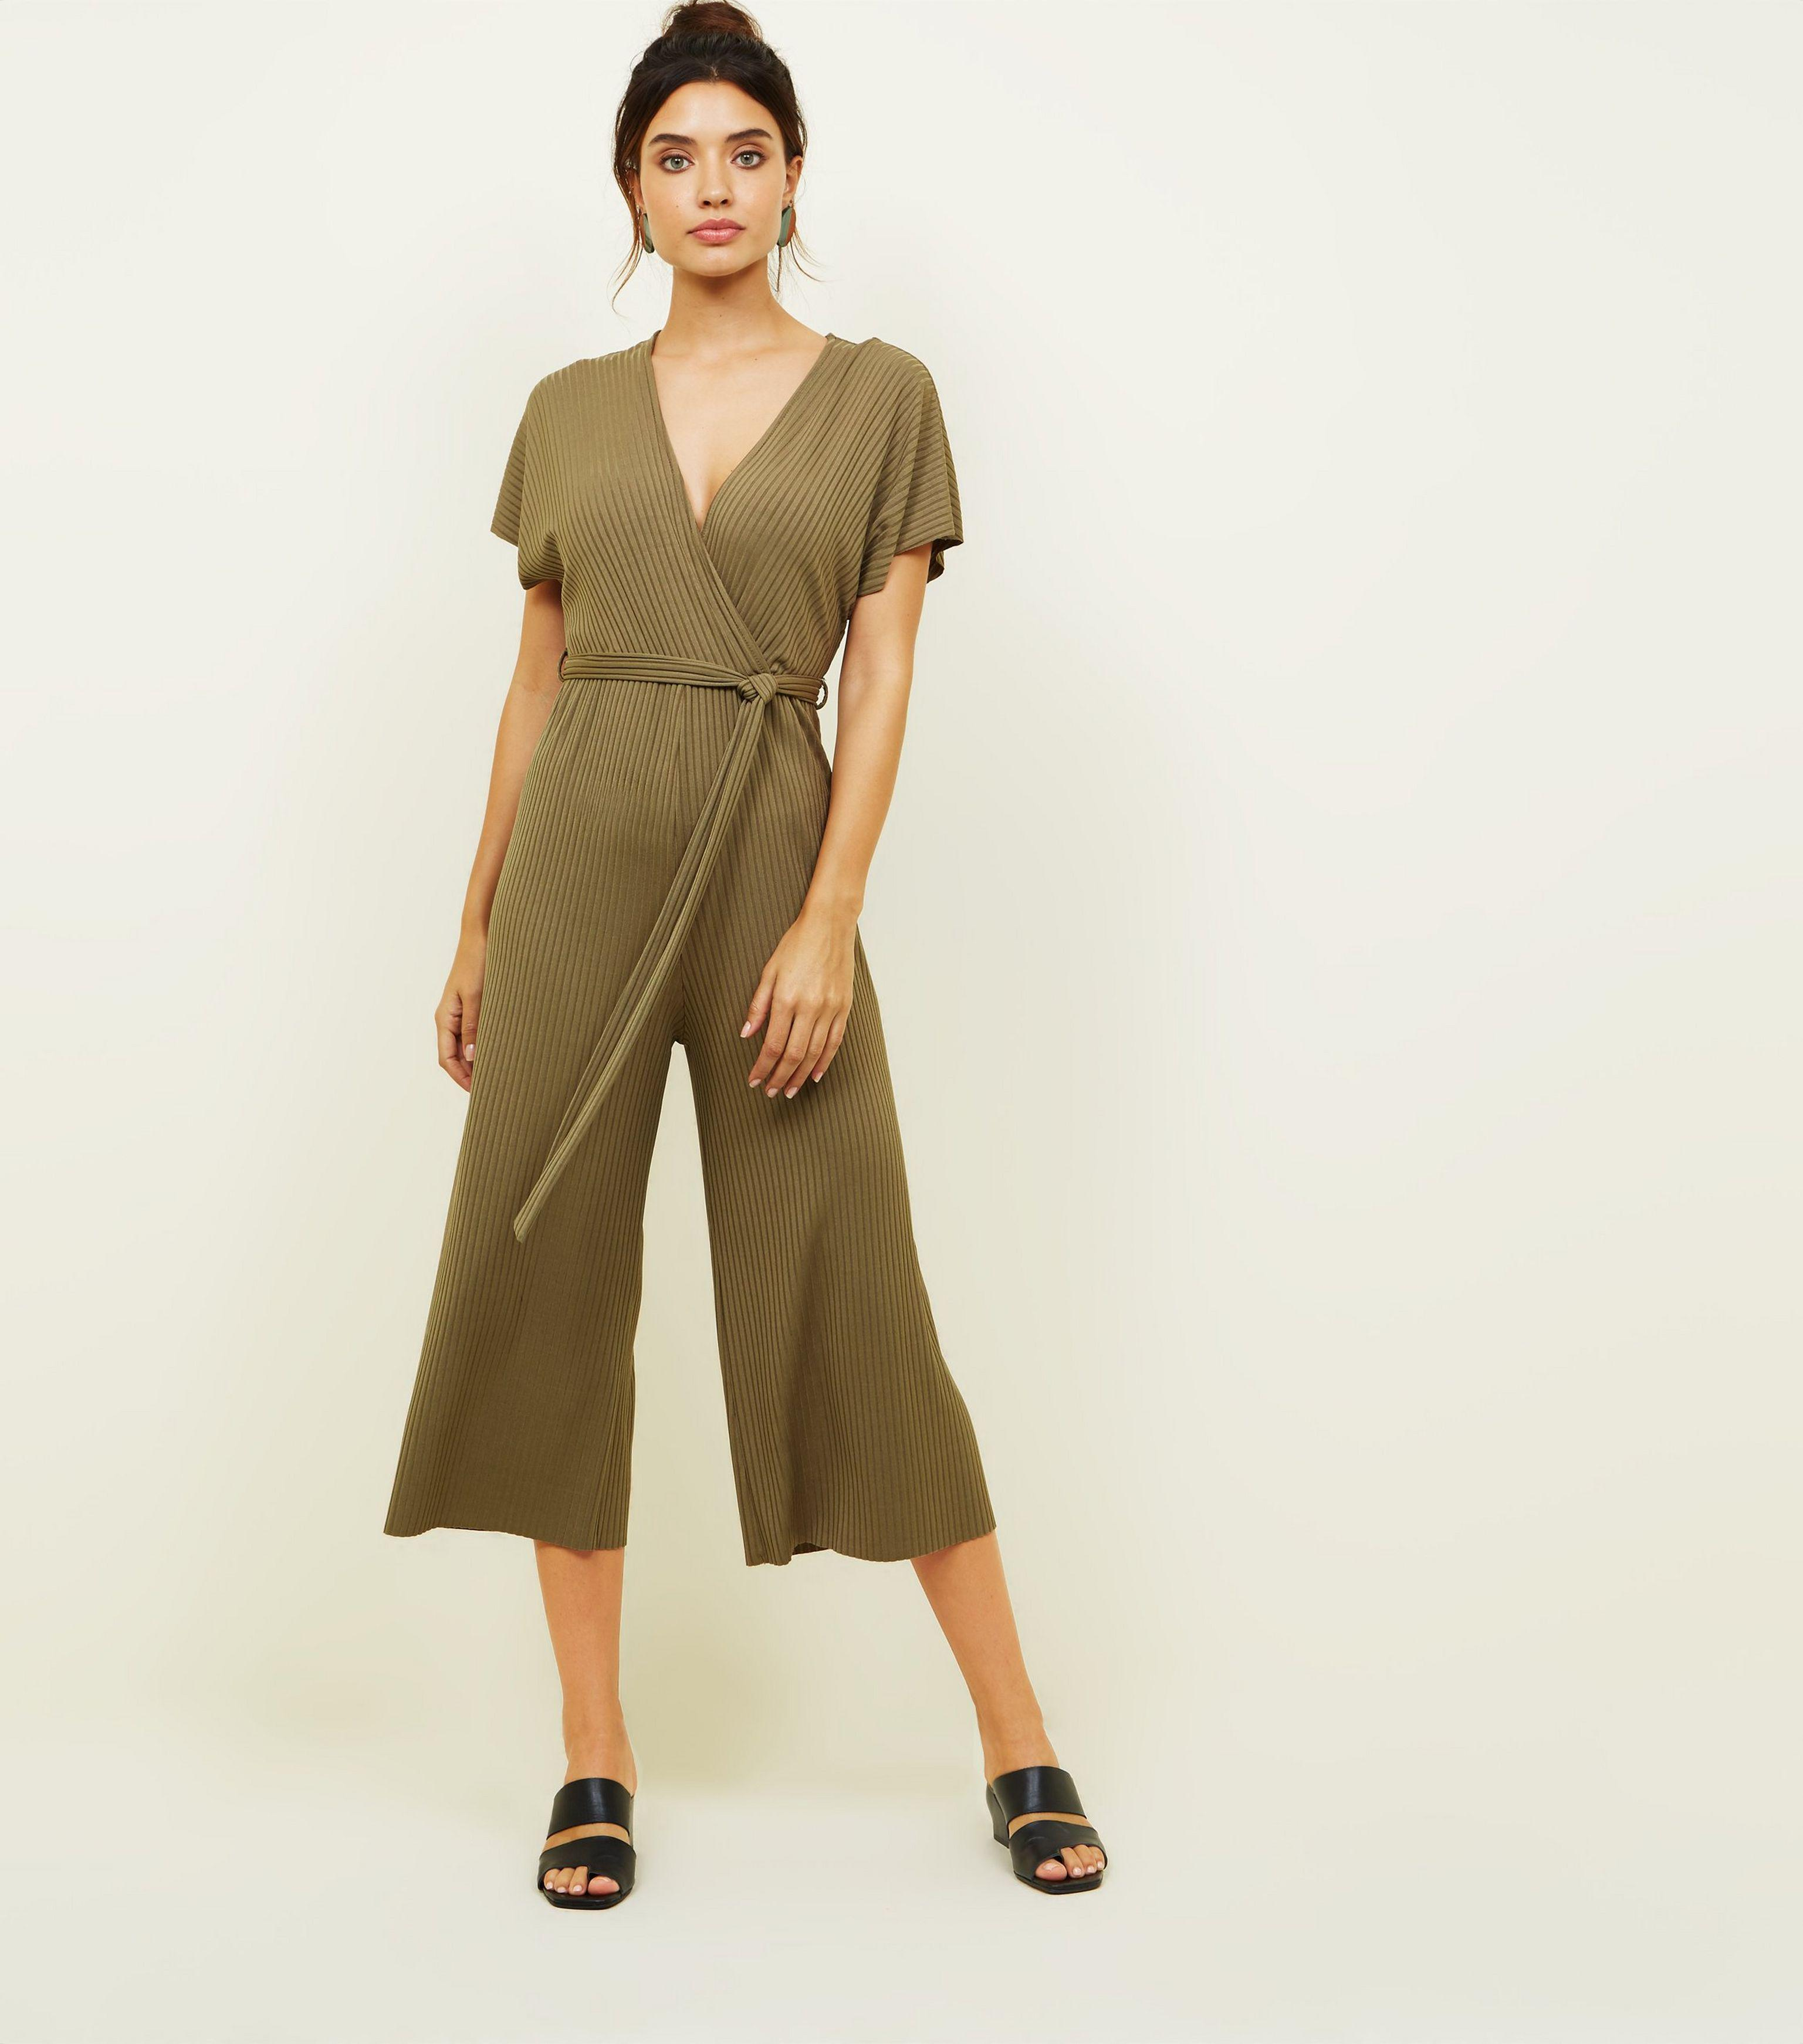 105a8e82b37 New Look Khaki Ribbed Wrap Front Culotte Jumpsuit in Natural - Lyst